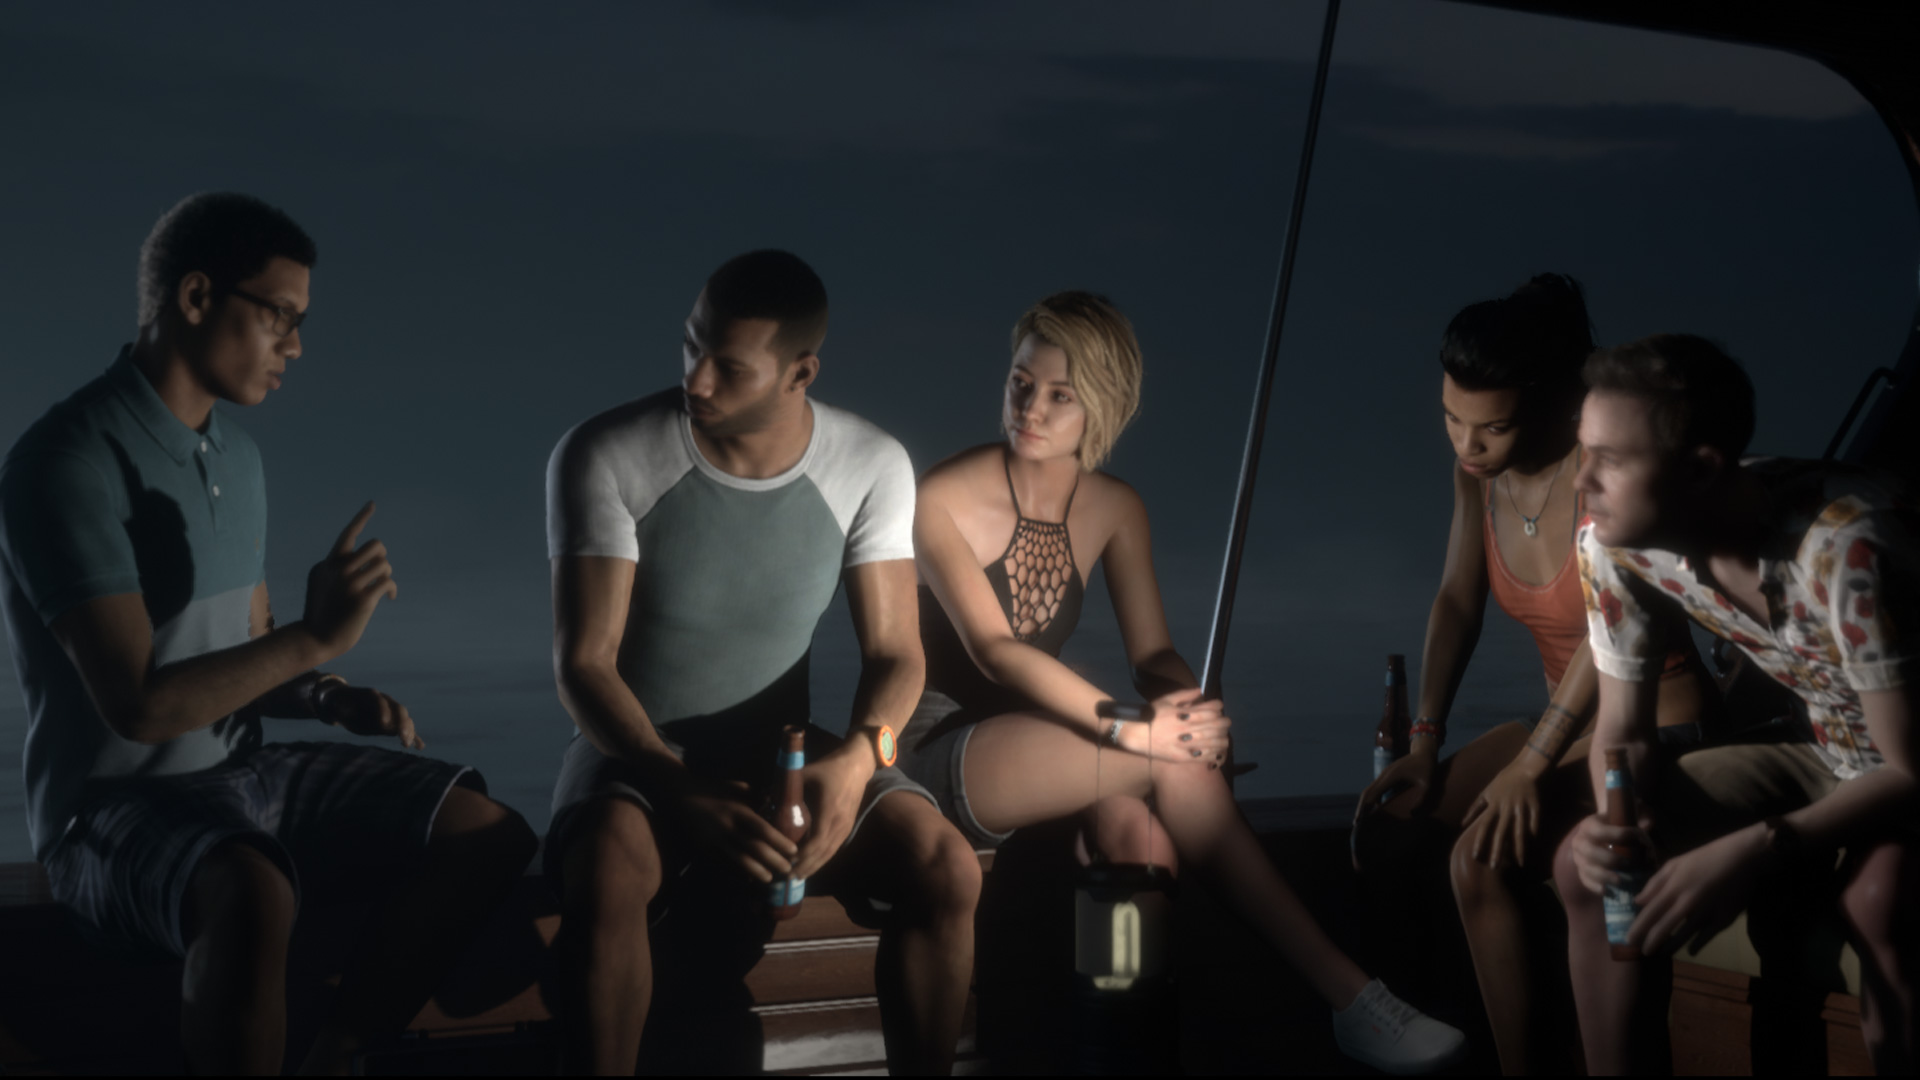 The Dark Pictures Anthology: Man of Medan PS4 review